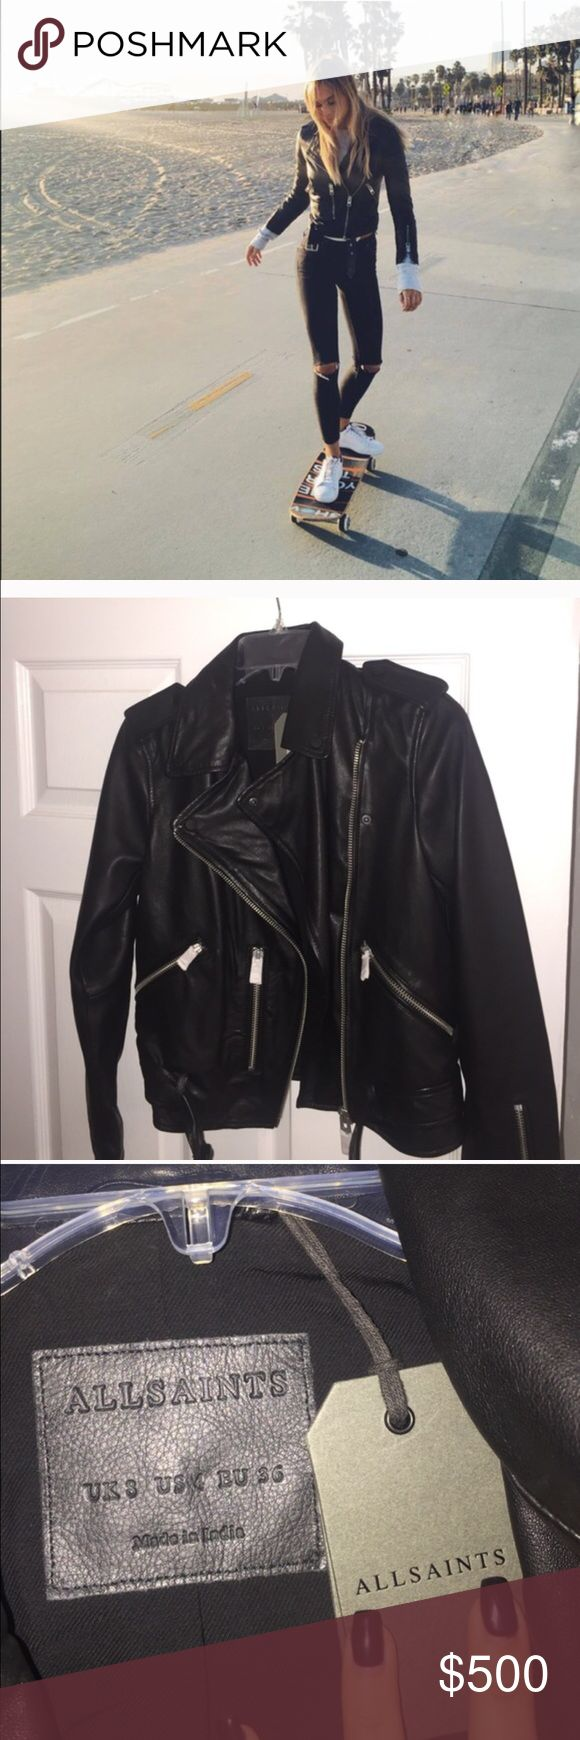 Alexis Ren black All Saints Balfern leather Jacket Brand new with tags and box, All Saints Balfern leather jacket. Exact same as the one Alexis Ren wears. Crazy comfy and beautiful leather. Will last for years and years. These NEVER go on sale at all saints so get here for a steal - right now on US all saints. It is hands down most beautiful leather jacket I have ever seen- I love mine and wear it all the time. Absolute Closet staple- no trades please UK 8 US 4 All Saints Jackets & Coats